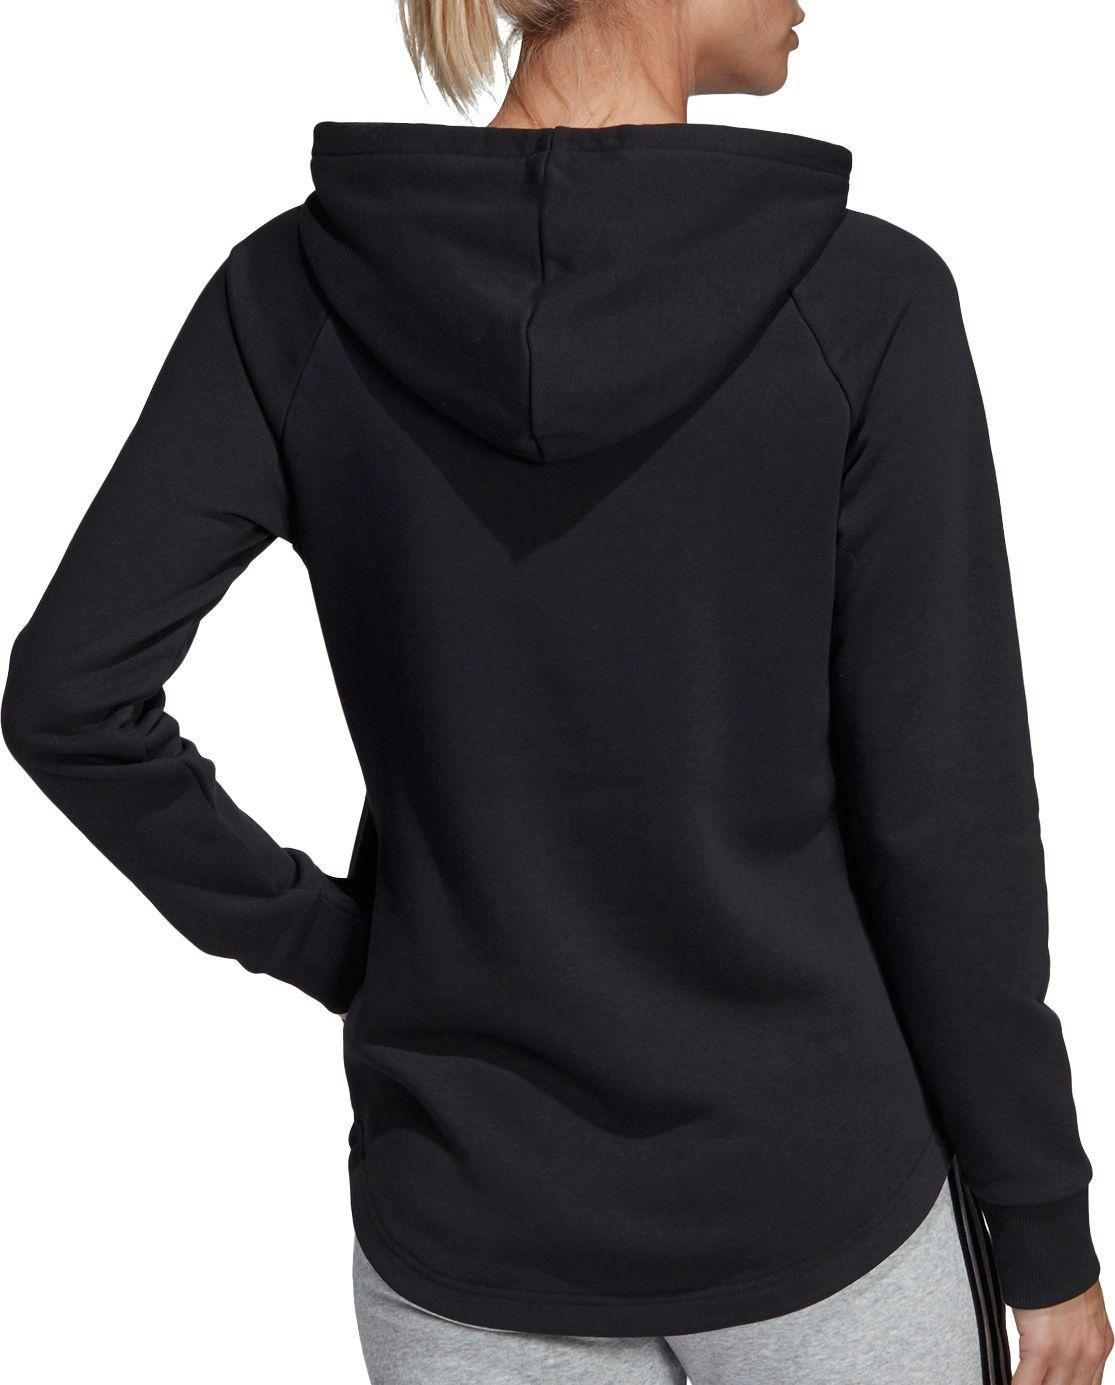 8b9357e3dc9b4d adidas Must Haves Badge Of Sport Hoodie in Black - Lyst